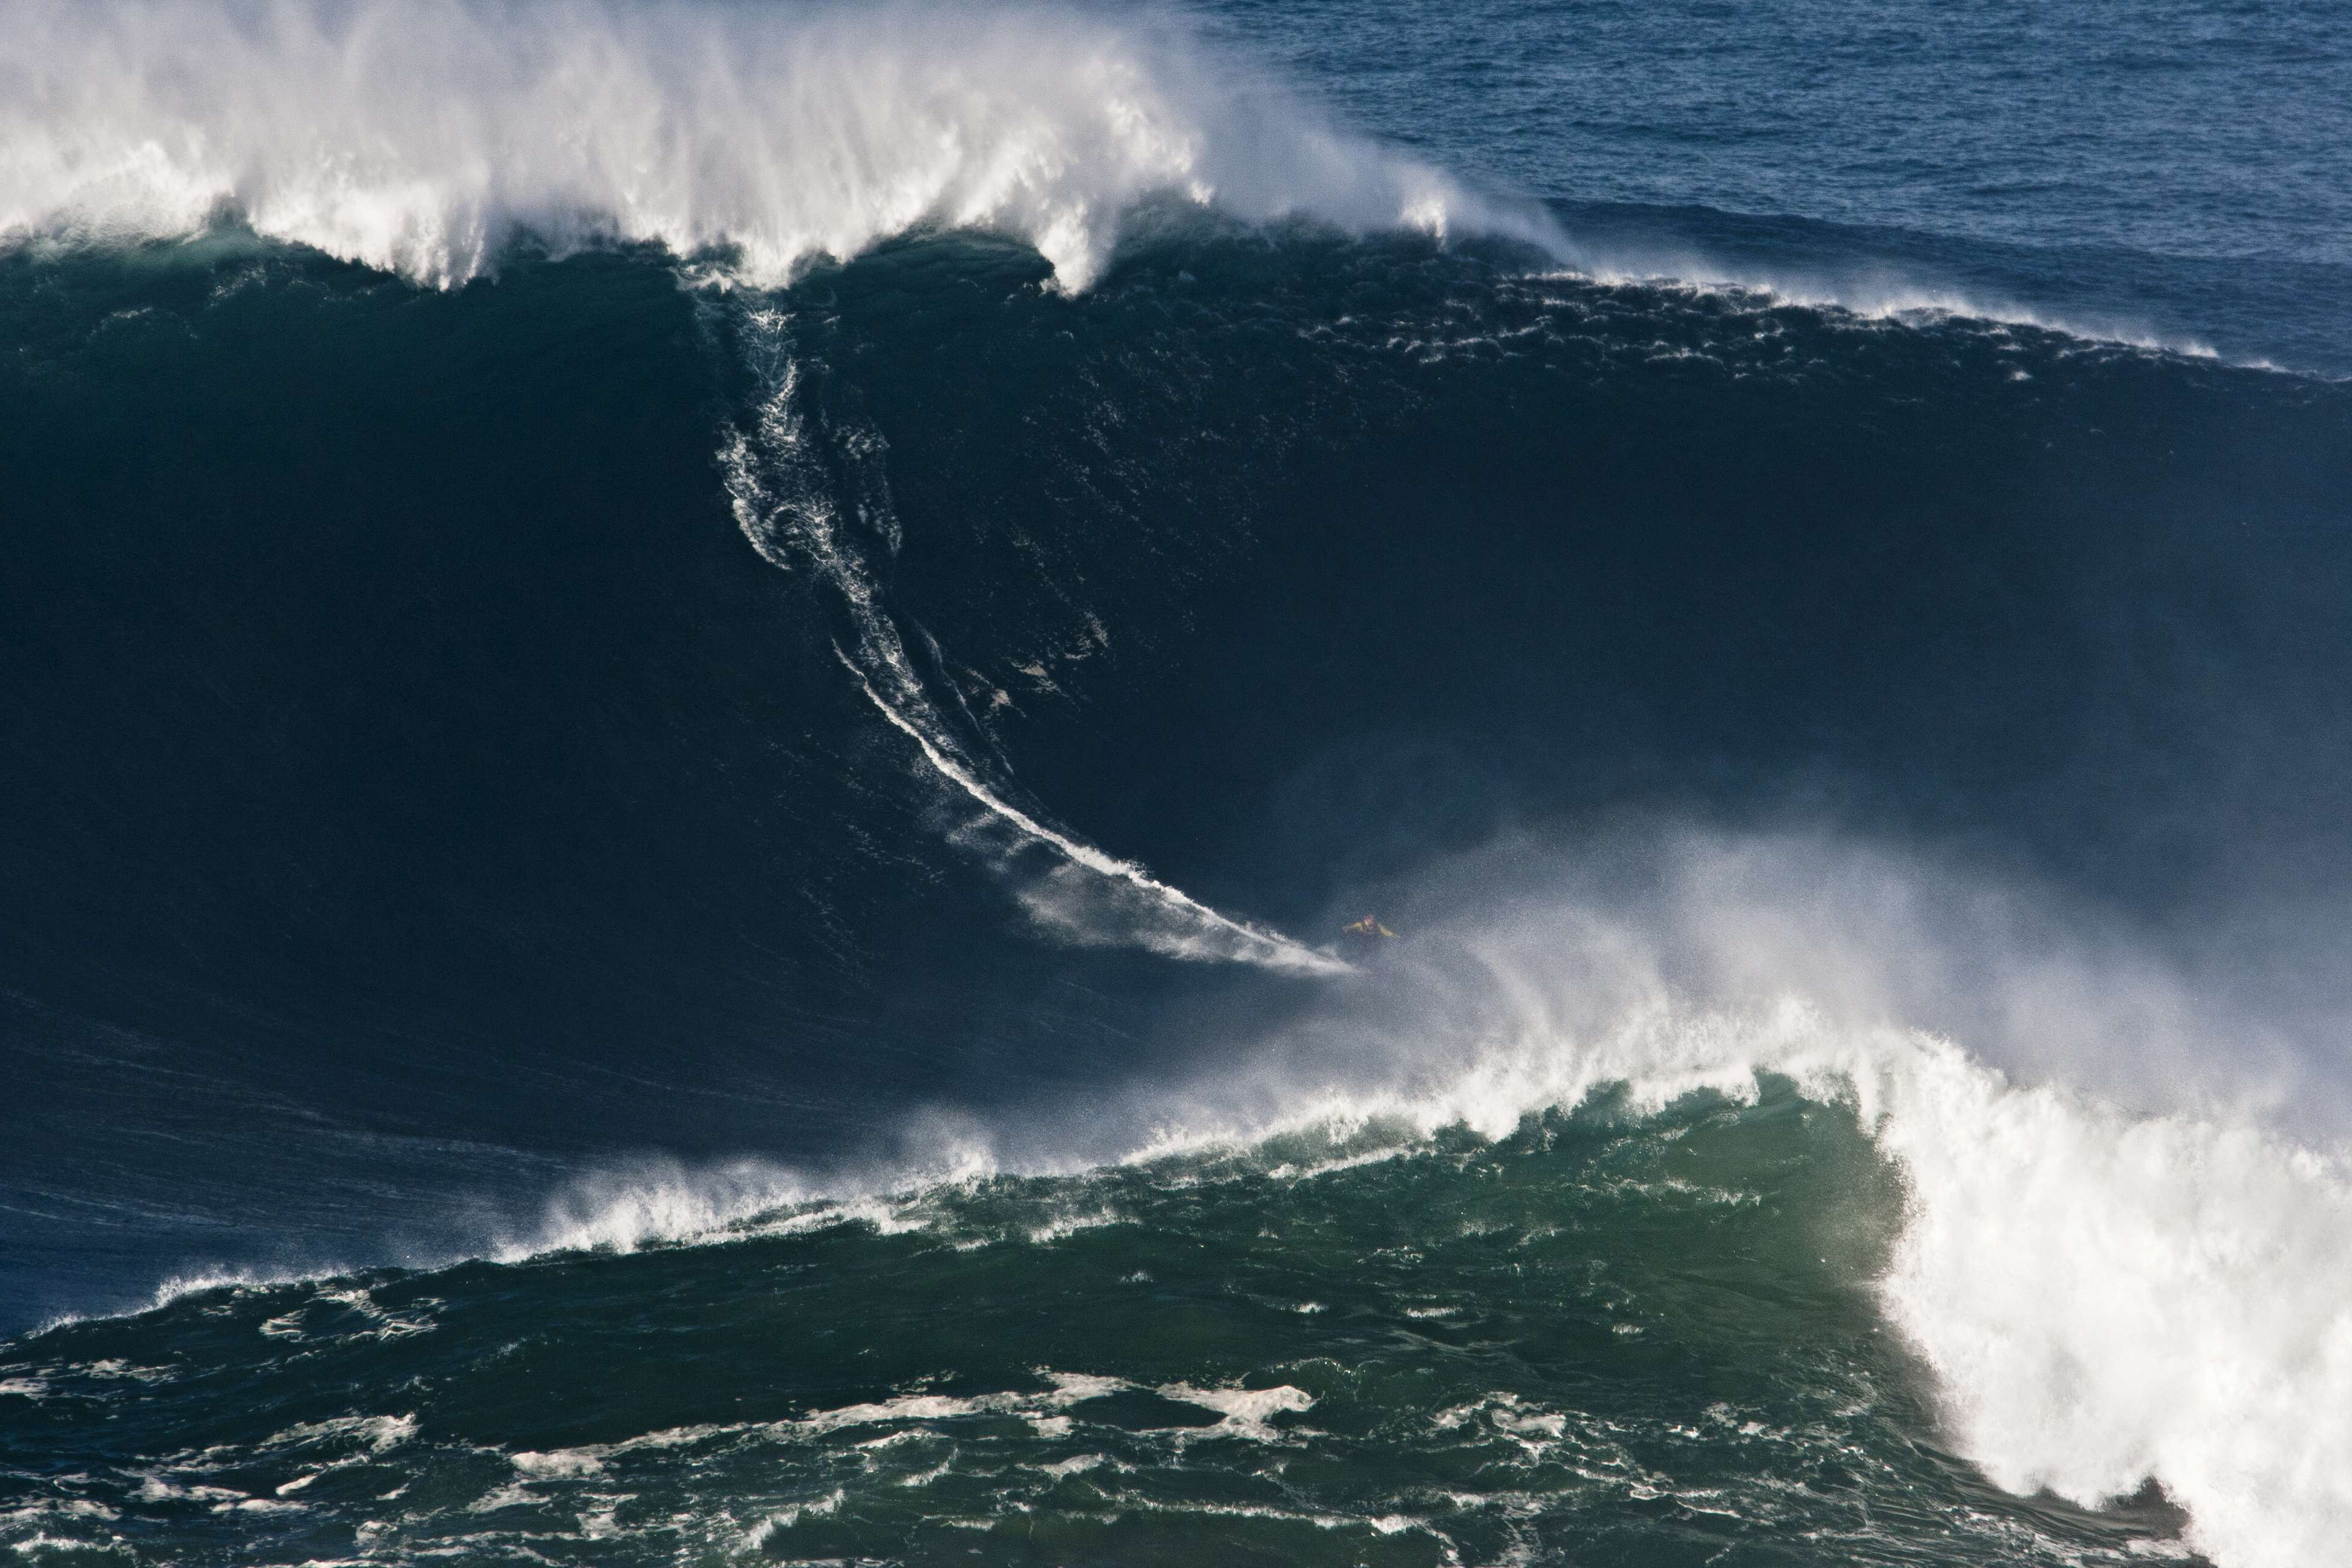 Big Wave Surfing, nazare, Portugal